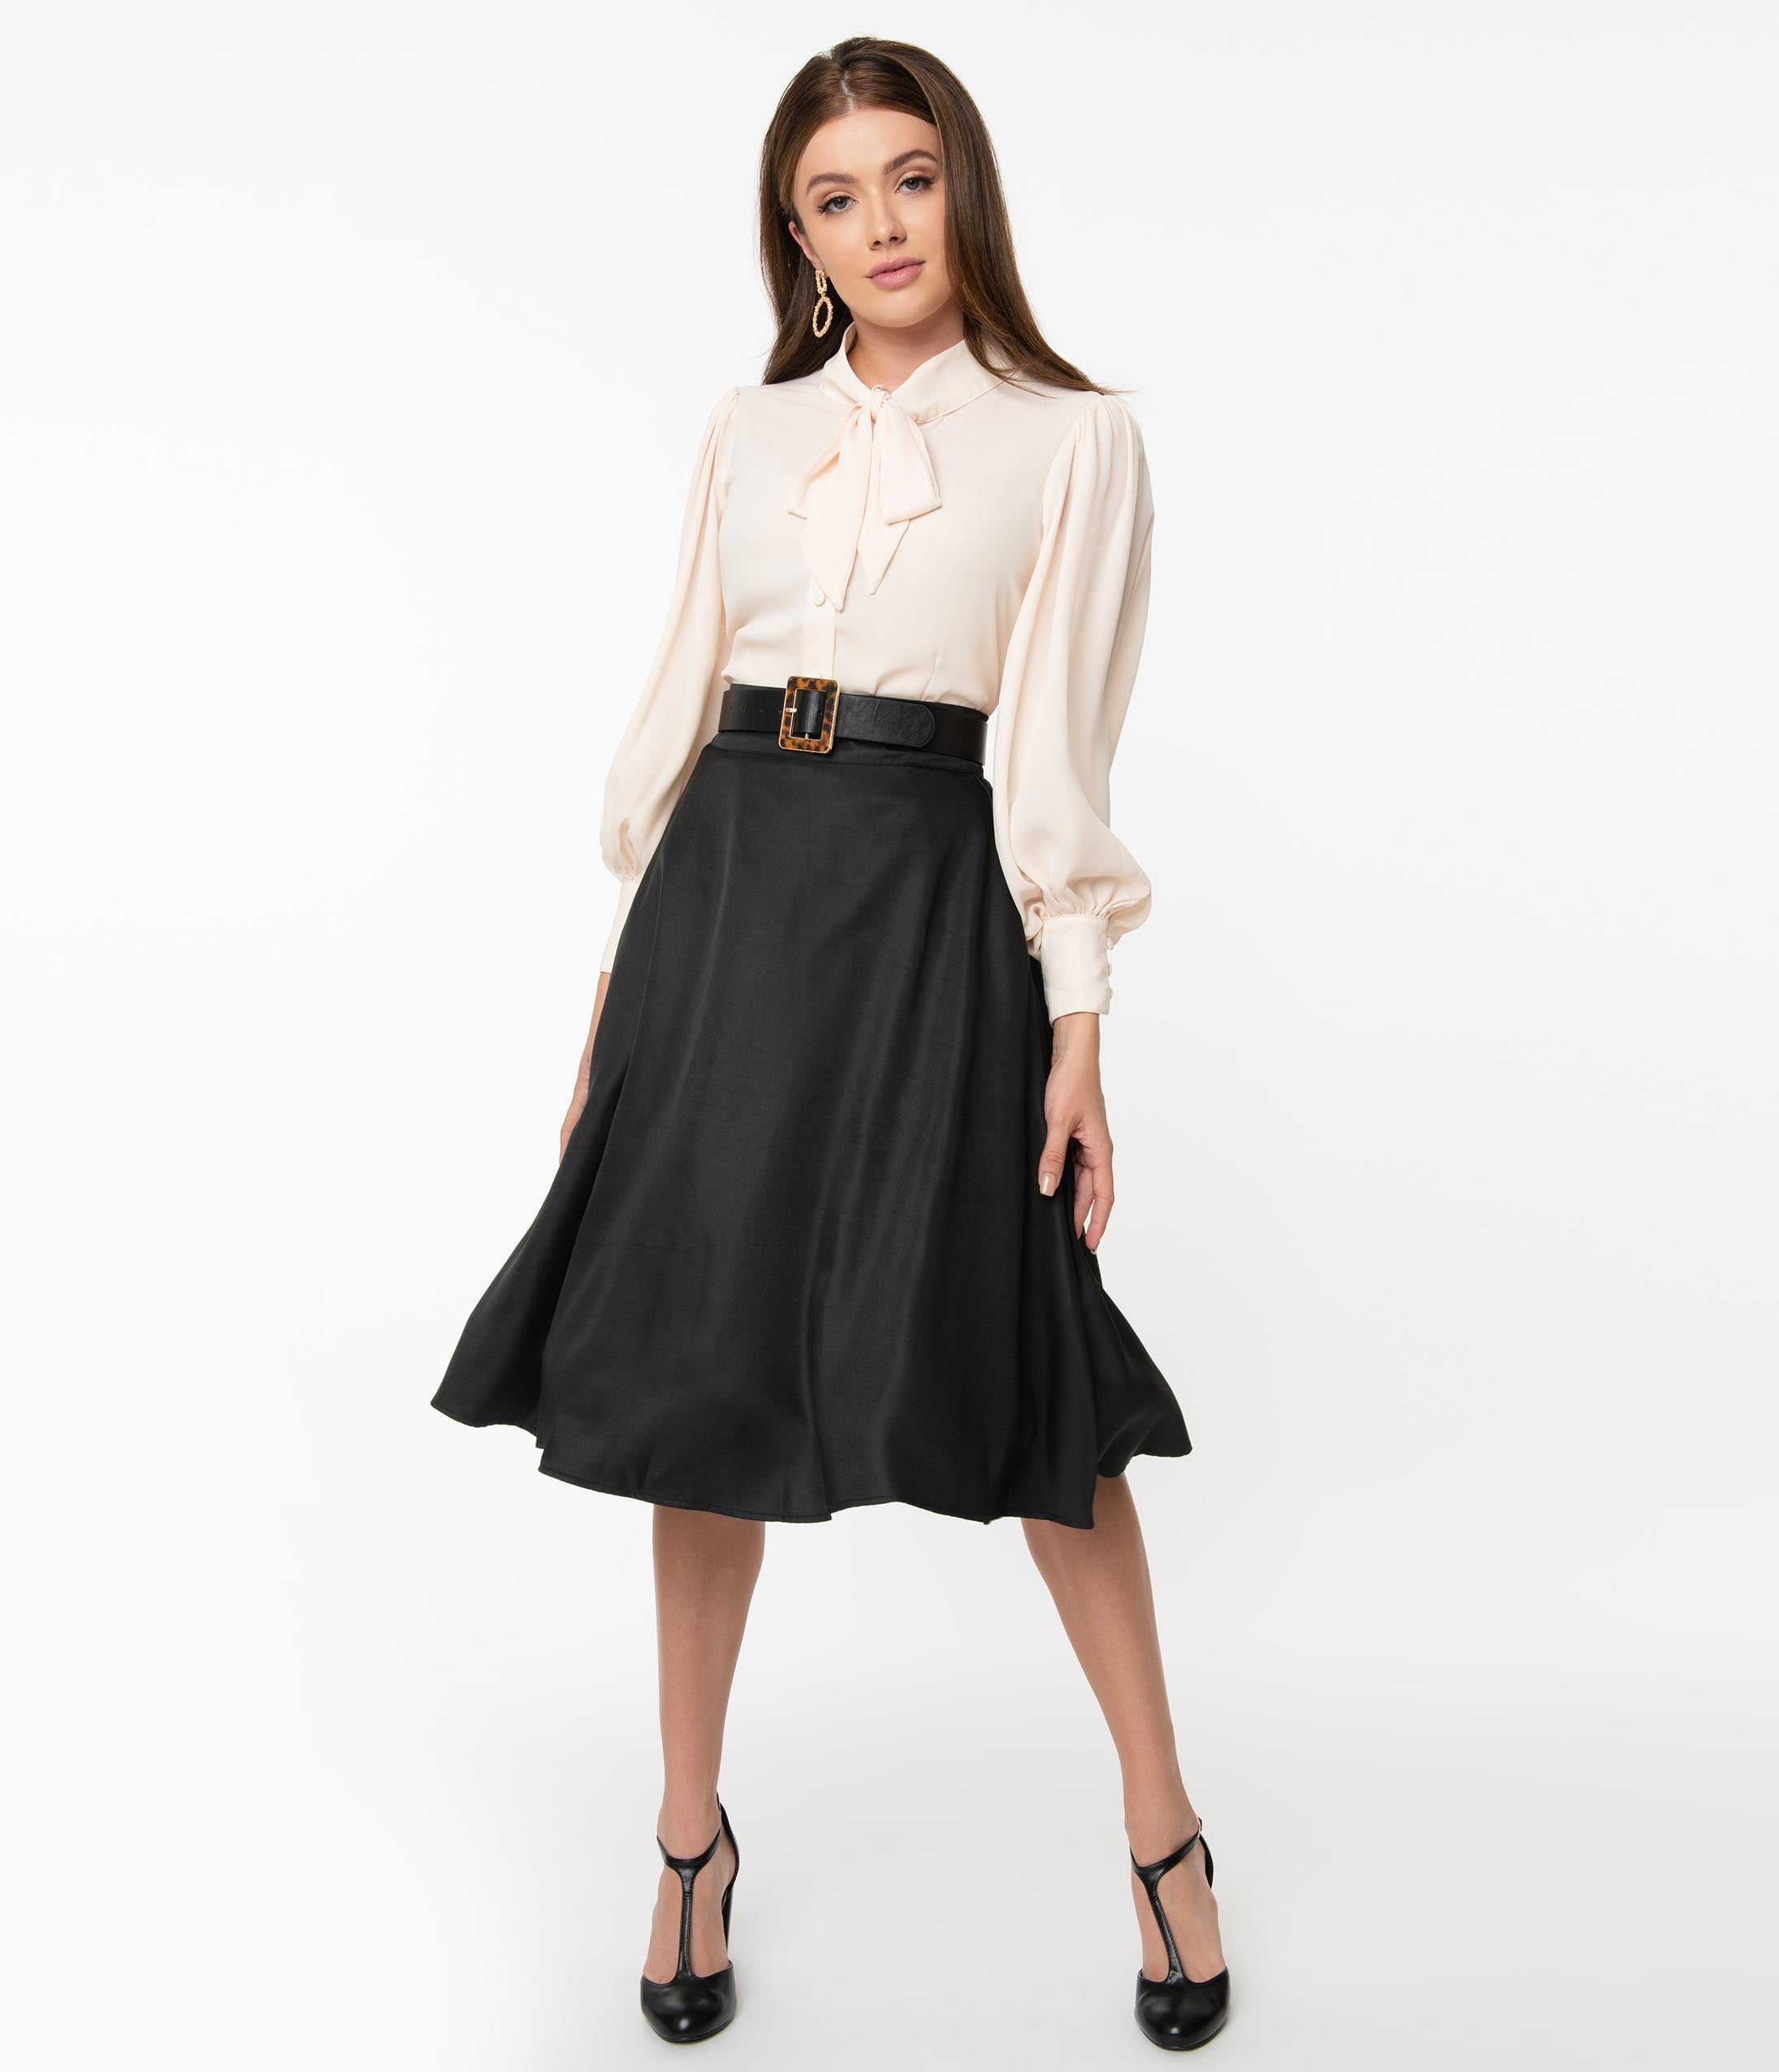 1930s Style Skirts : Midi Skirts, Tea Length, Pleated Unique Vintage Retro Style Black High Waist Vivien Swing Skirt $48.00 AT vintagedancer.com